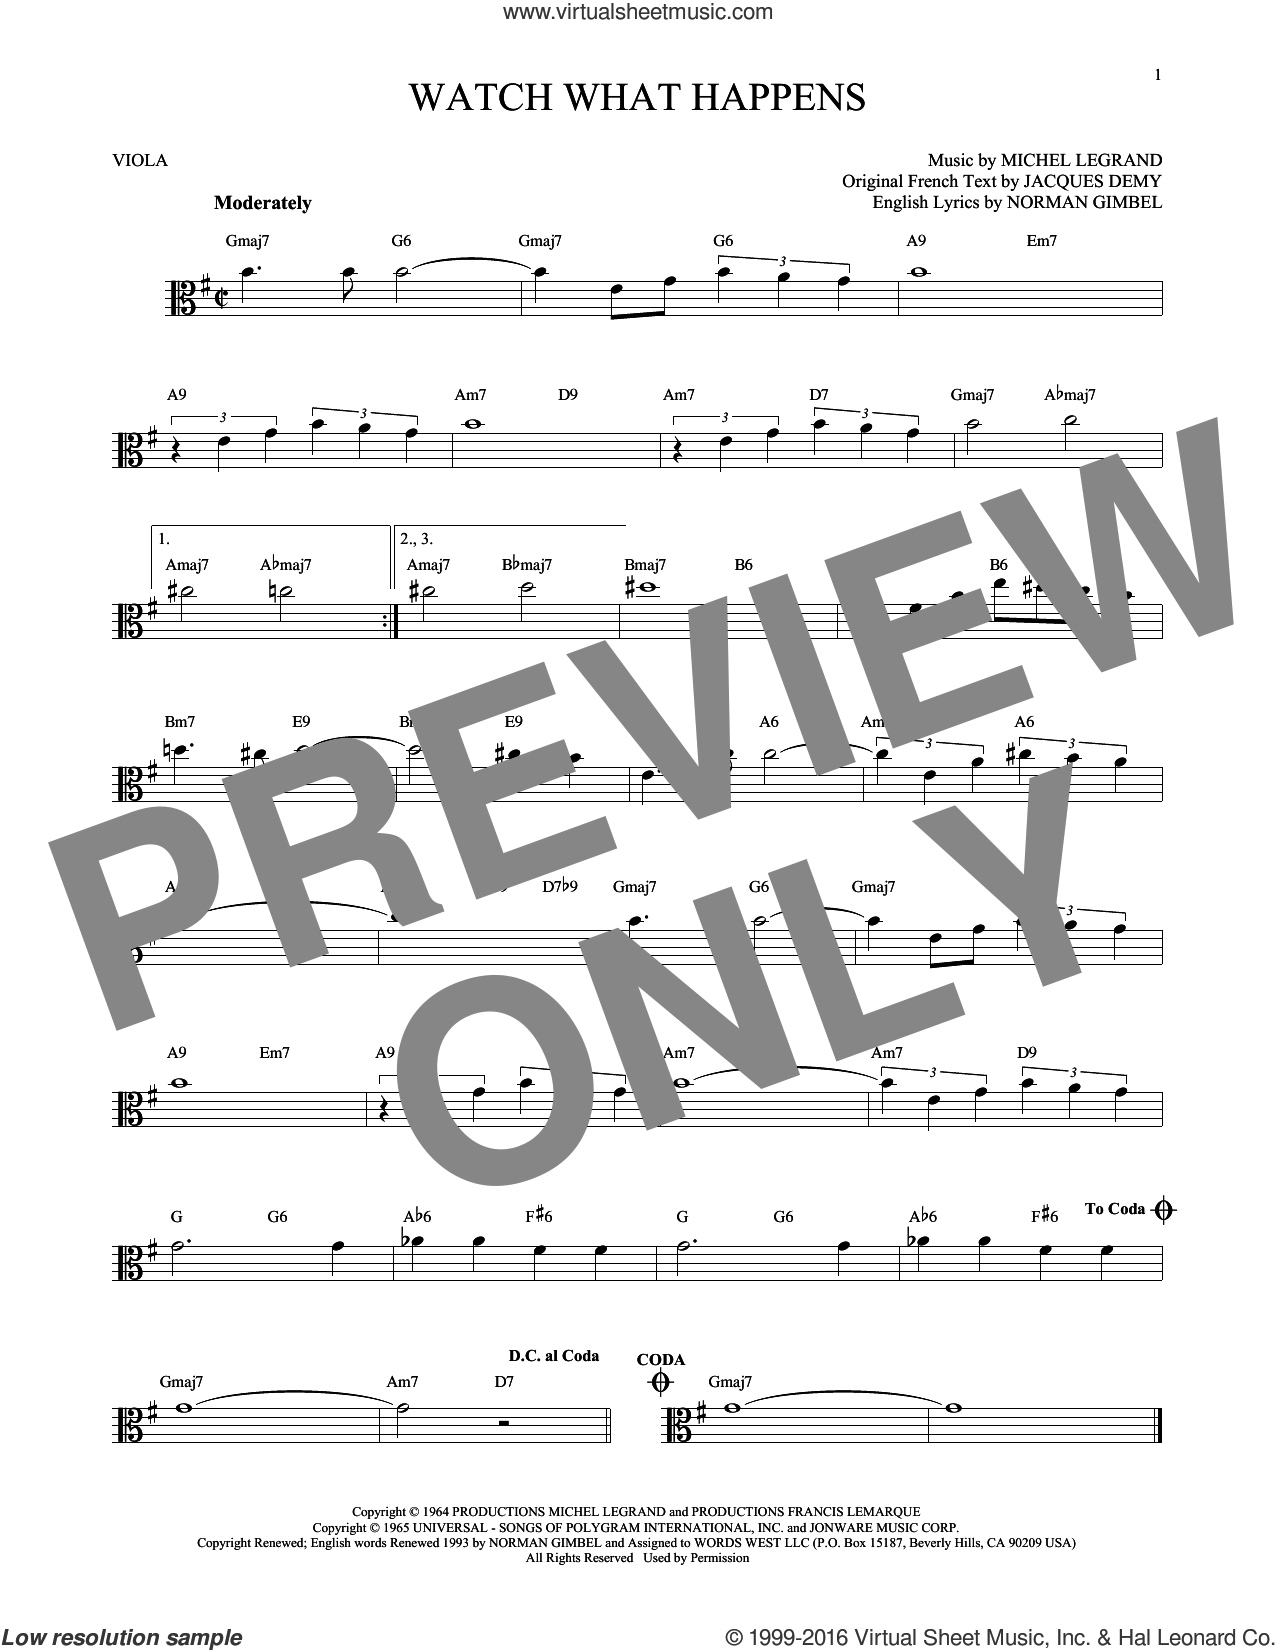 Watch What Happens sheet music for viola solo by Norman Gimbel and Michel LeGrand, intermediate skill level